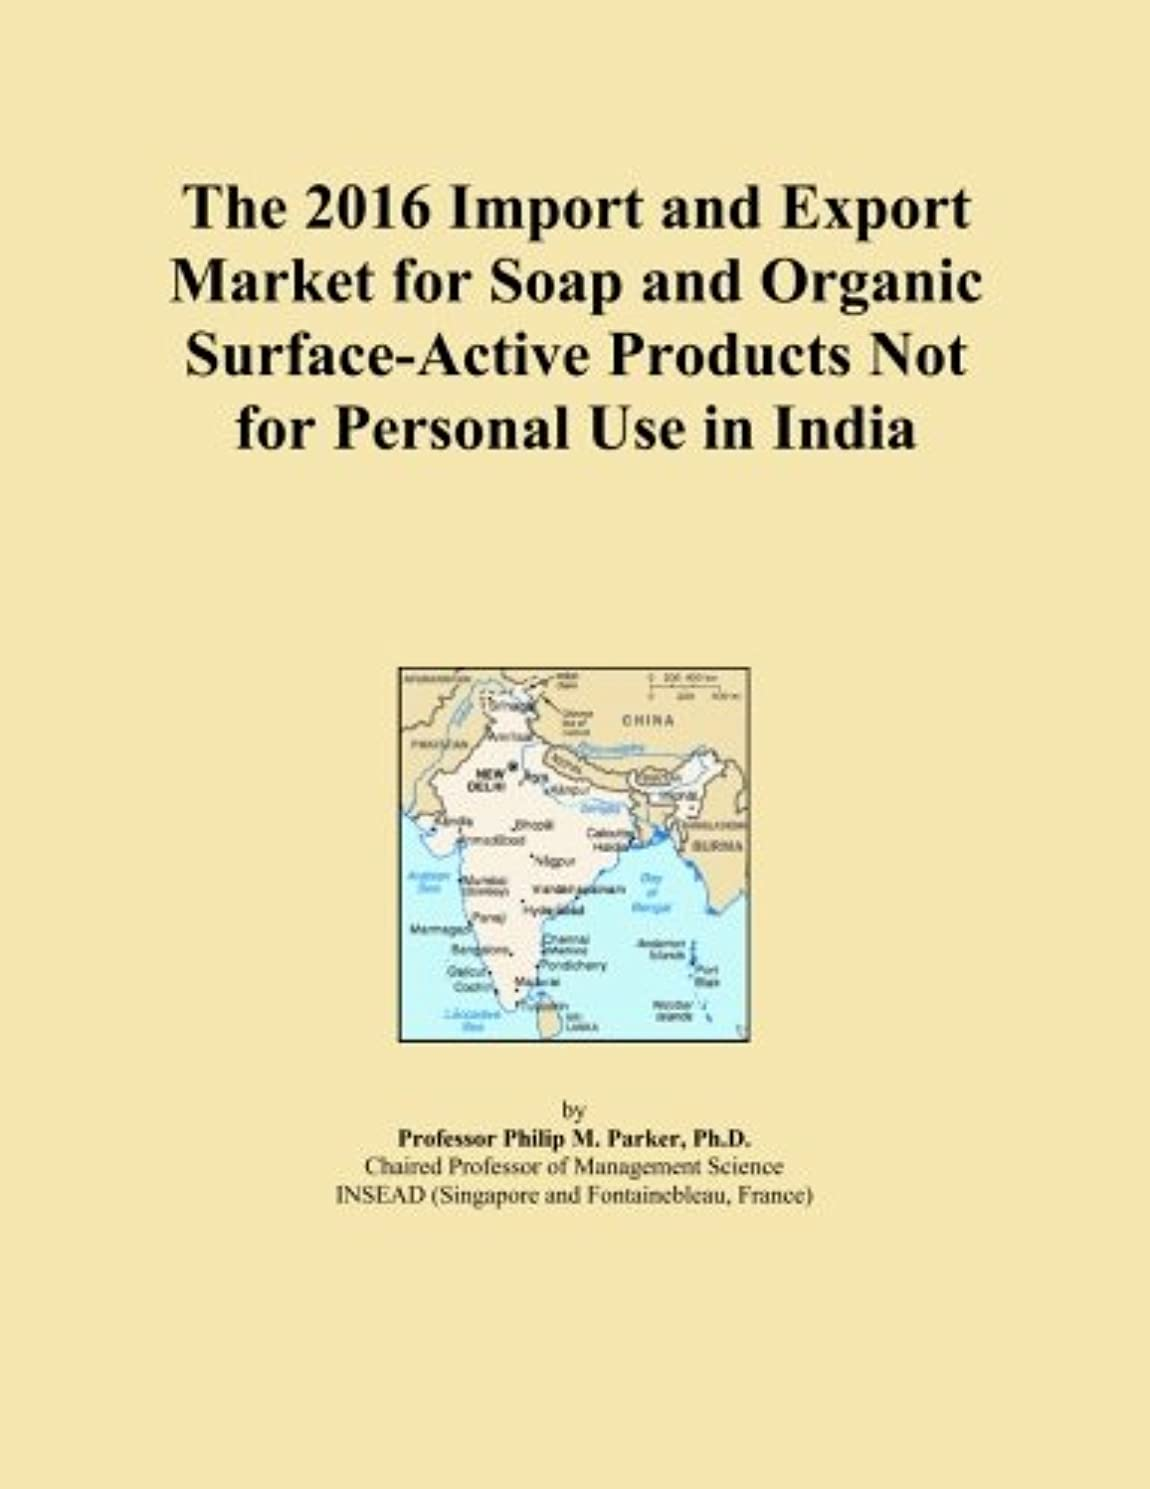 The 2016 Import and Export Market for Soap and Organic Surface-Active Products Not for Personal Use in India